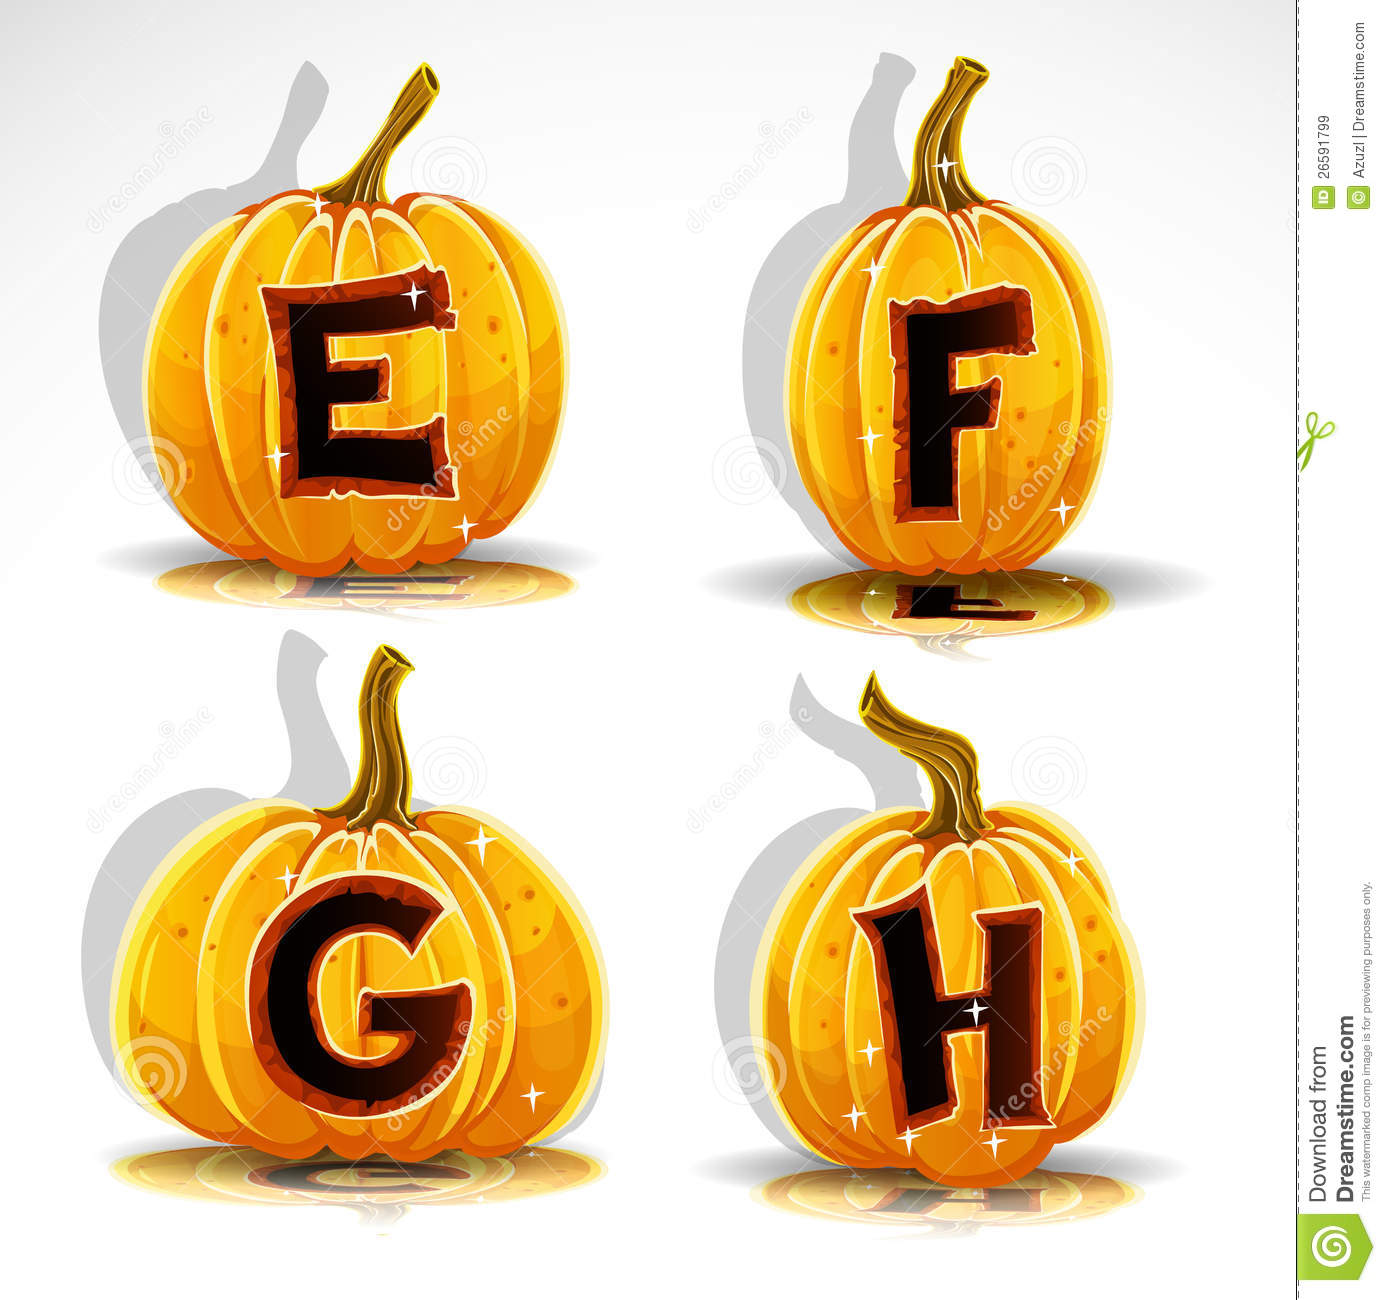 Halloween Font Cut Out Pumpkin Letter EFGH Royalty Free